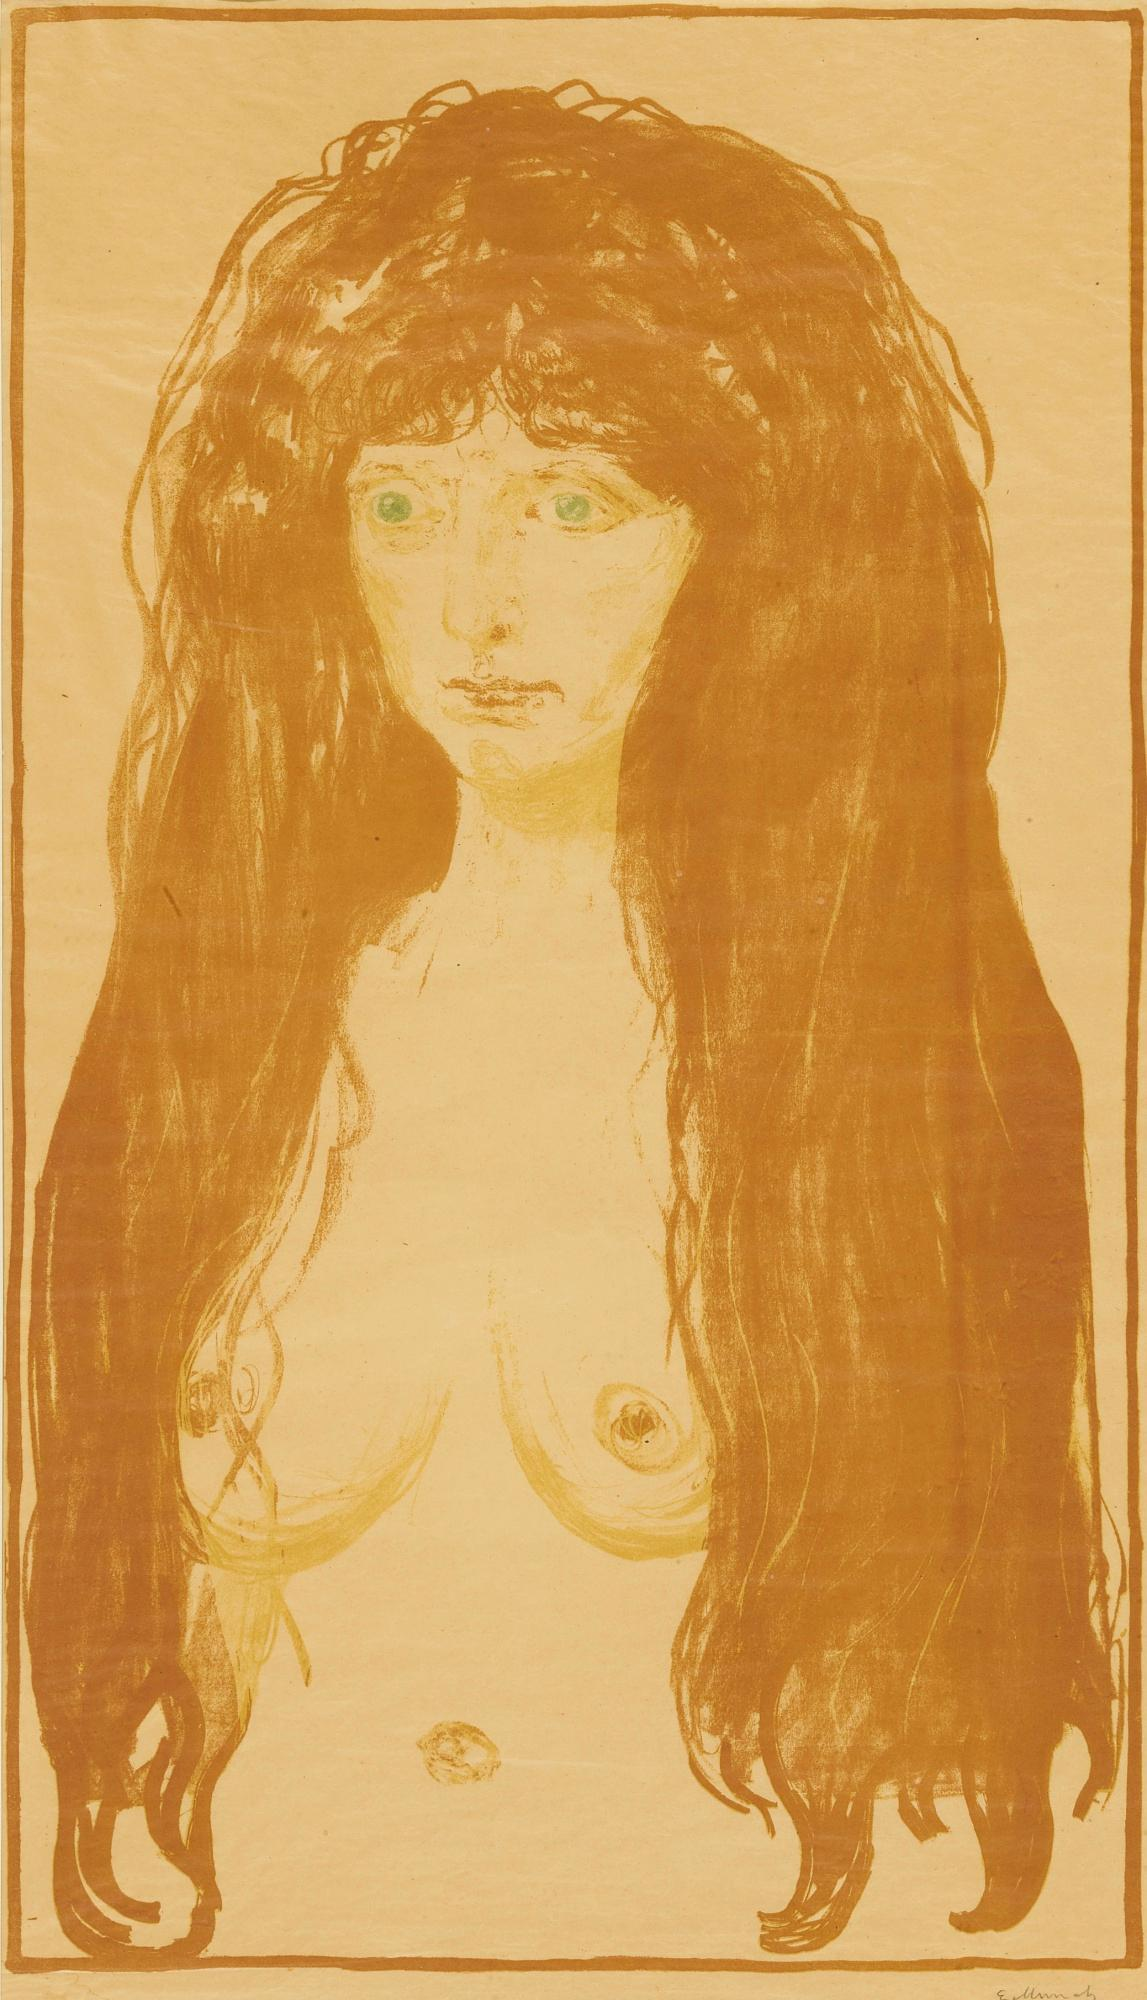 Woman With Red Hair And Green Eyes The Sin (Schiefler 142; Woll 198) by Edvard Munch